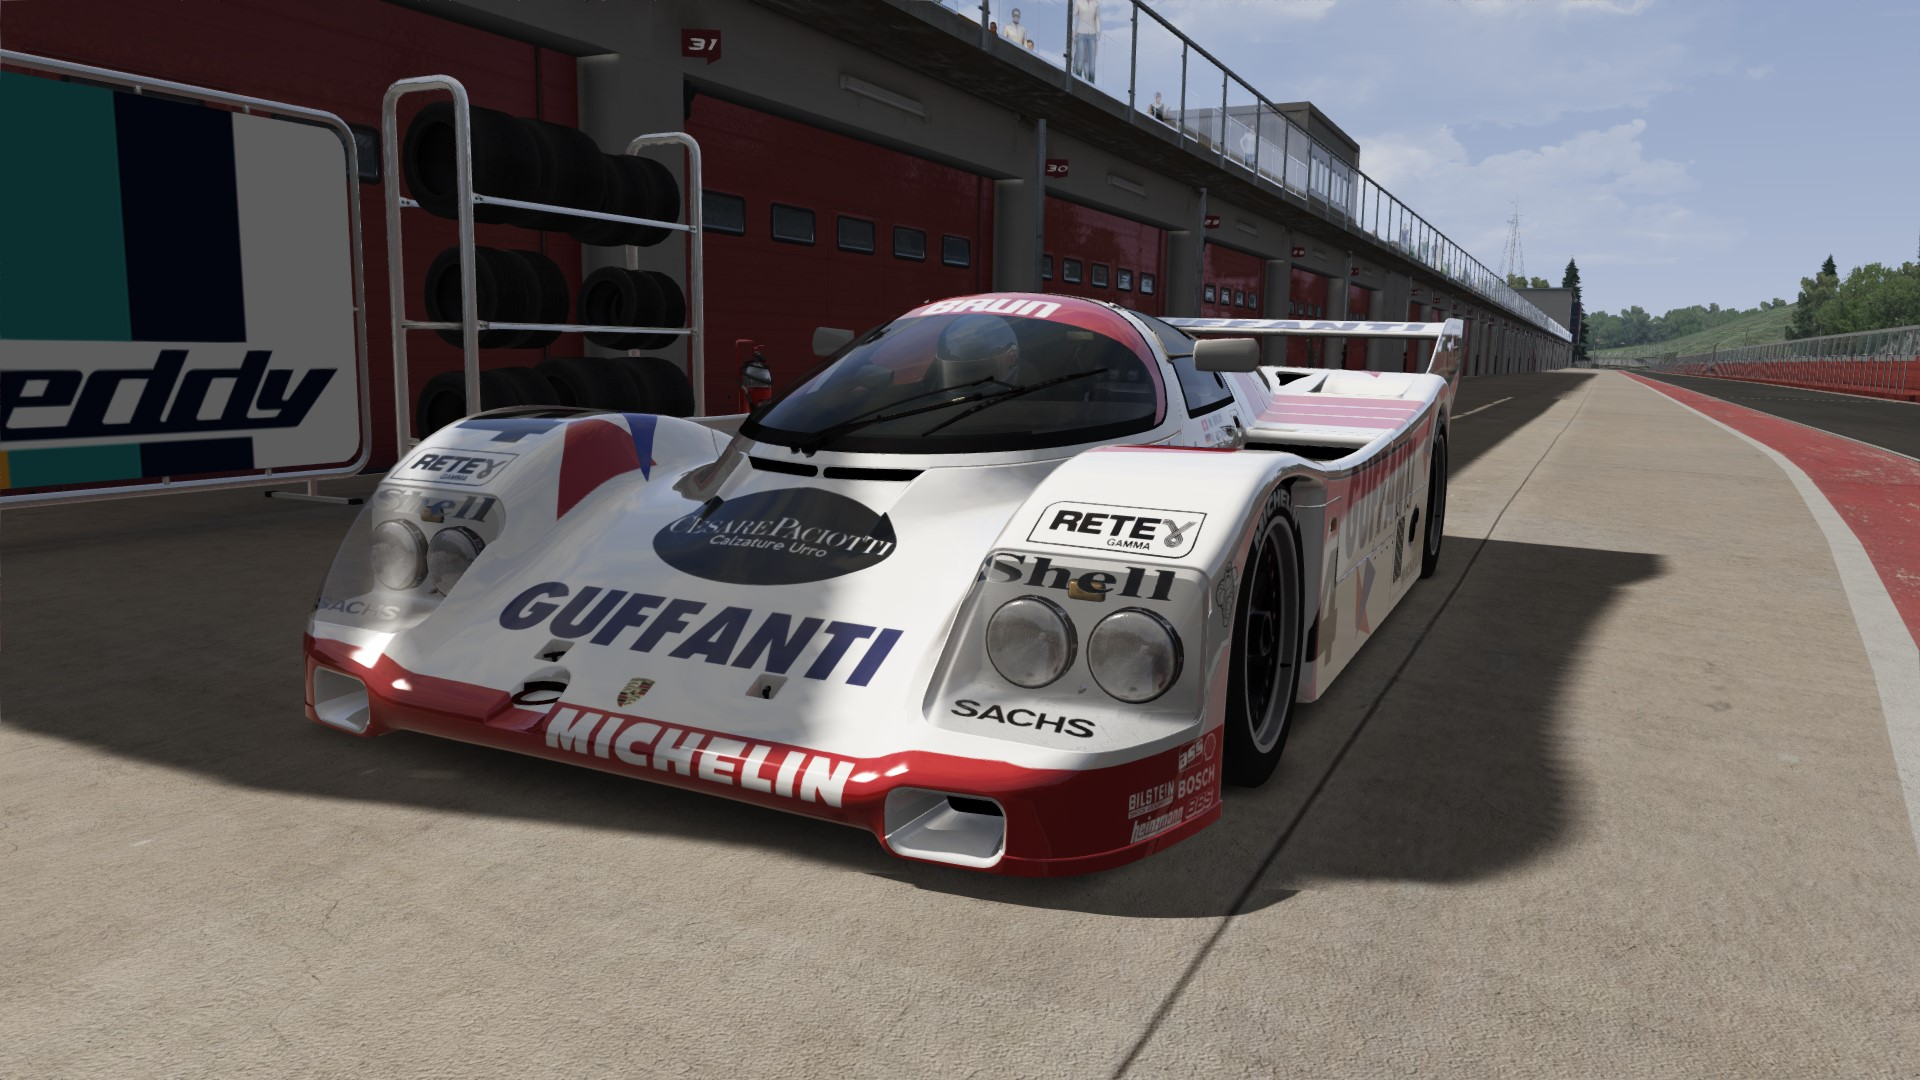 Screenshot_ks_porsche_962c_shorttail_imola_5-1-117-22-49-32.jpg